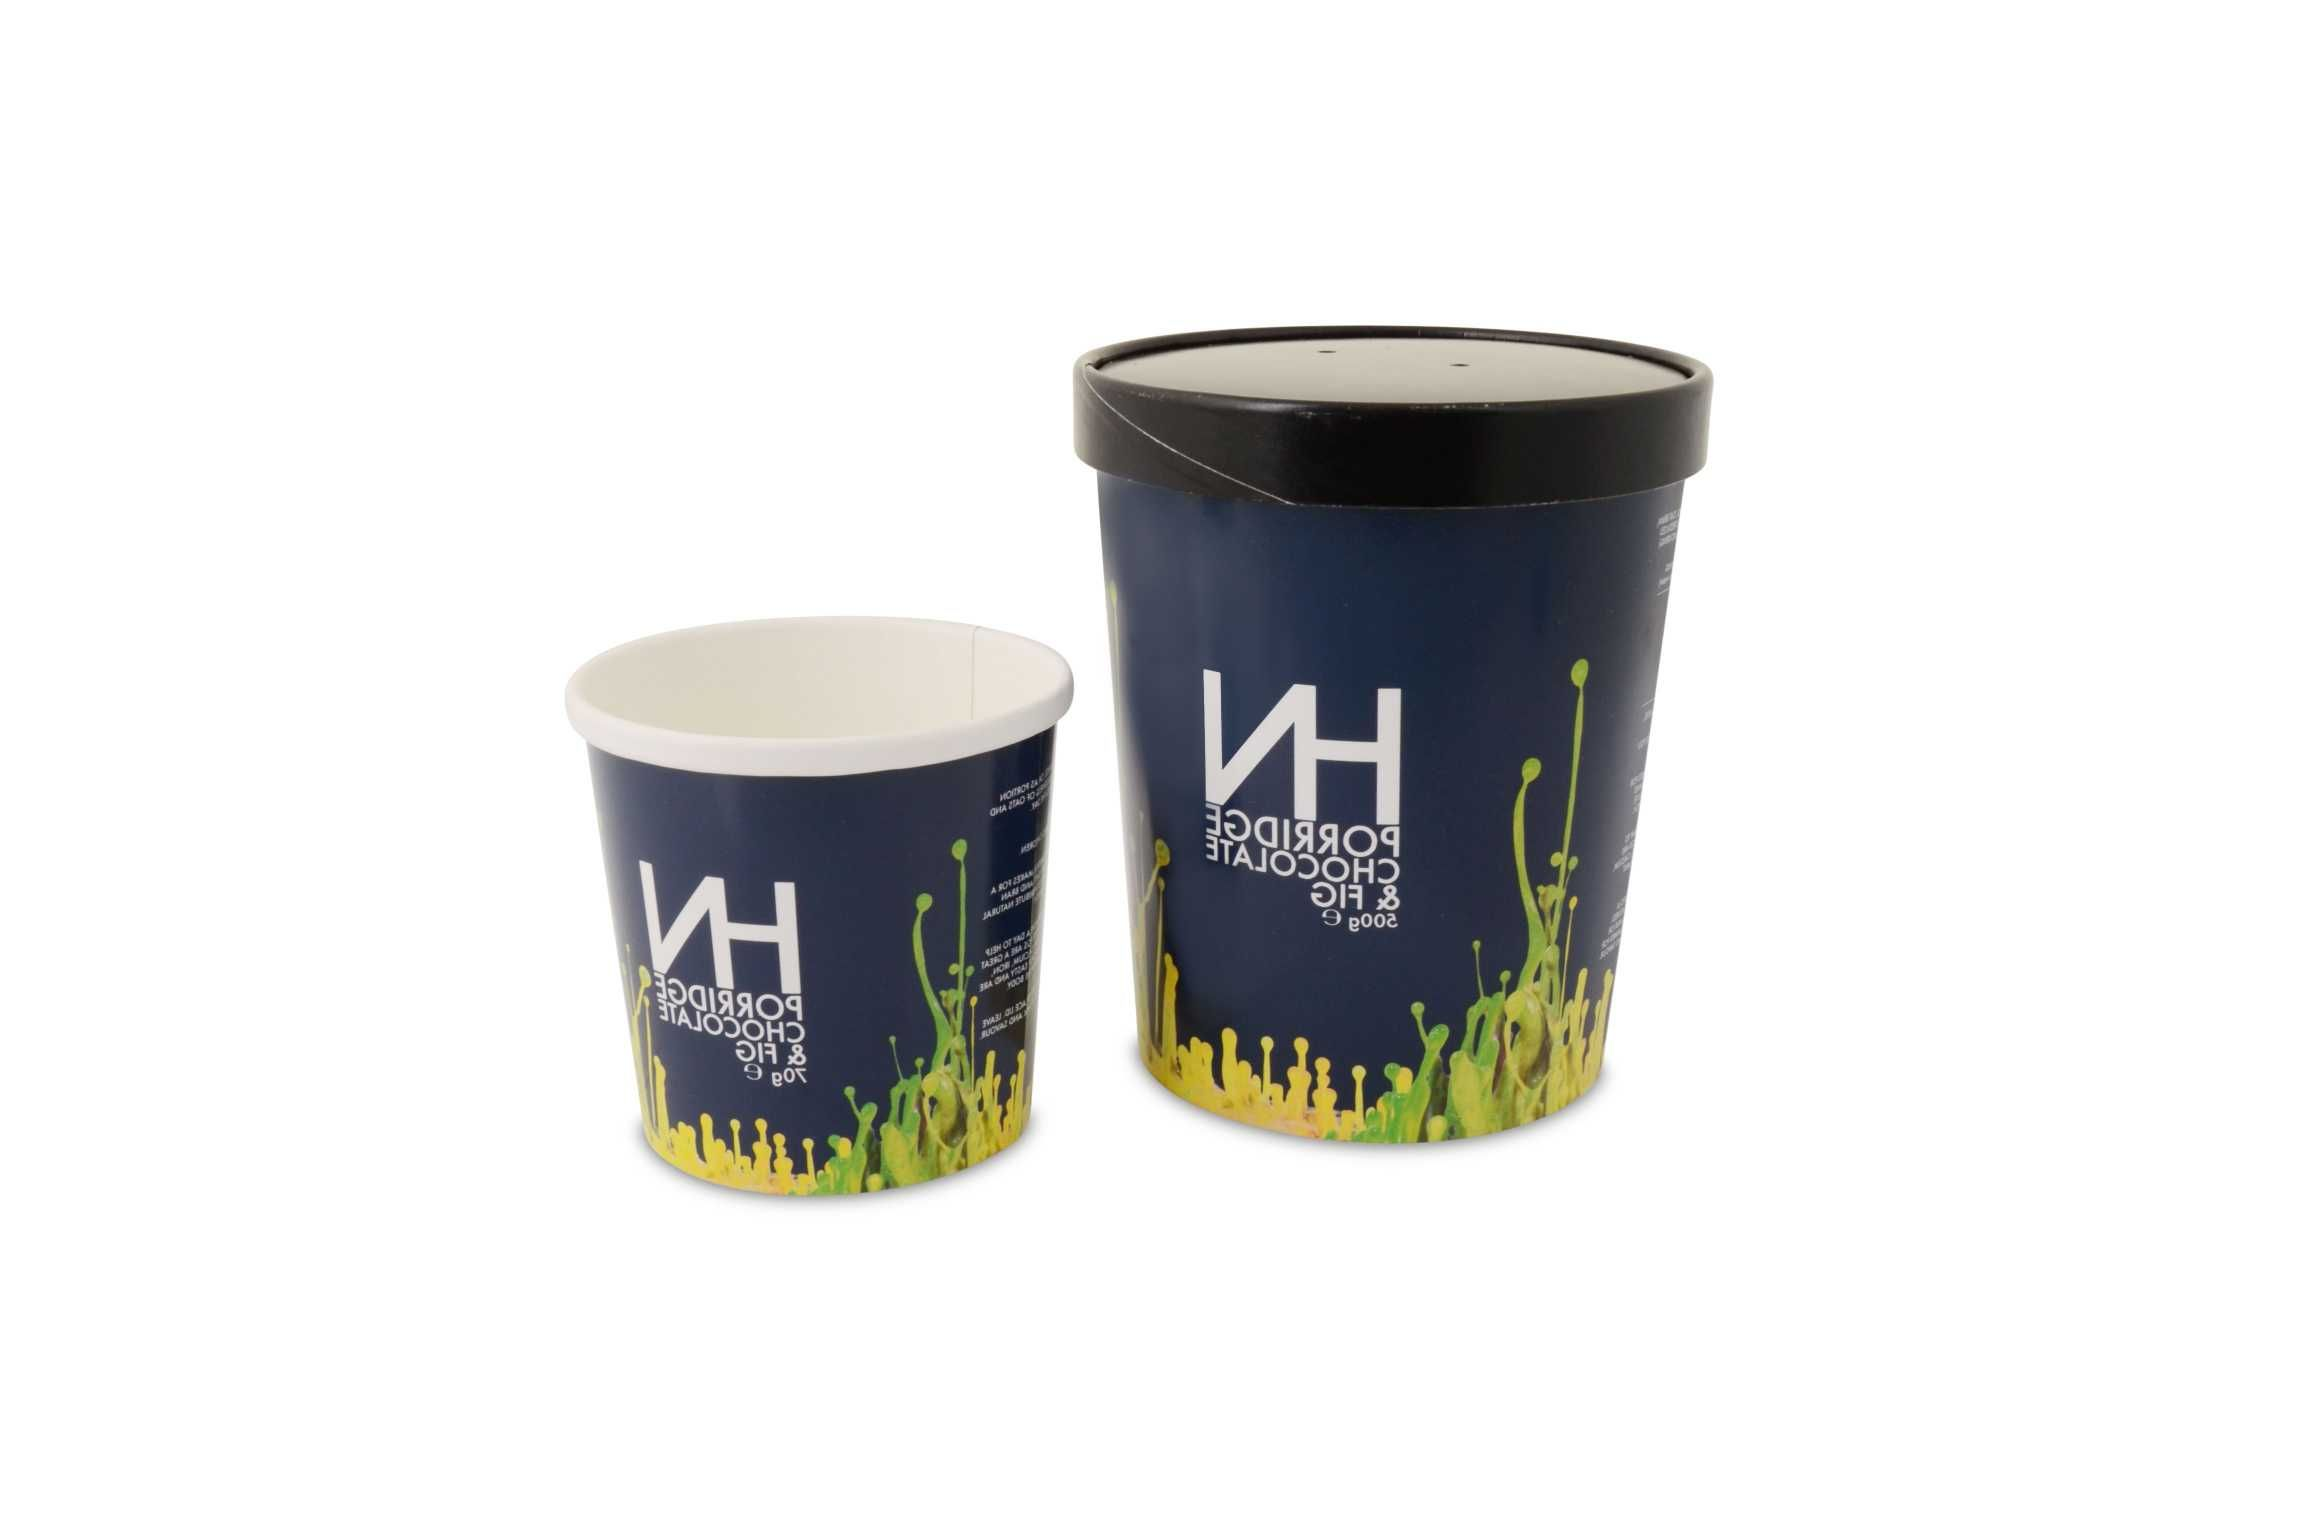 custom printed compostable containers for harvey nichols